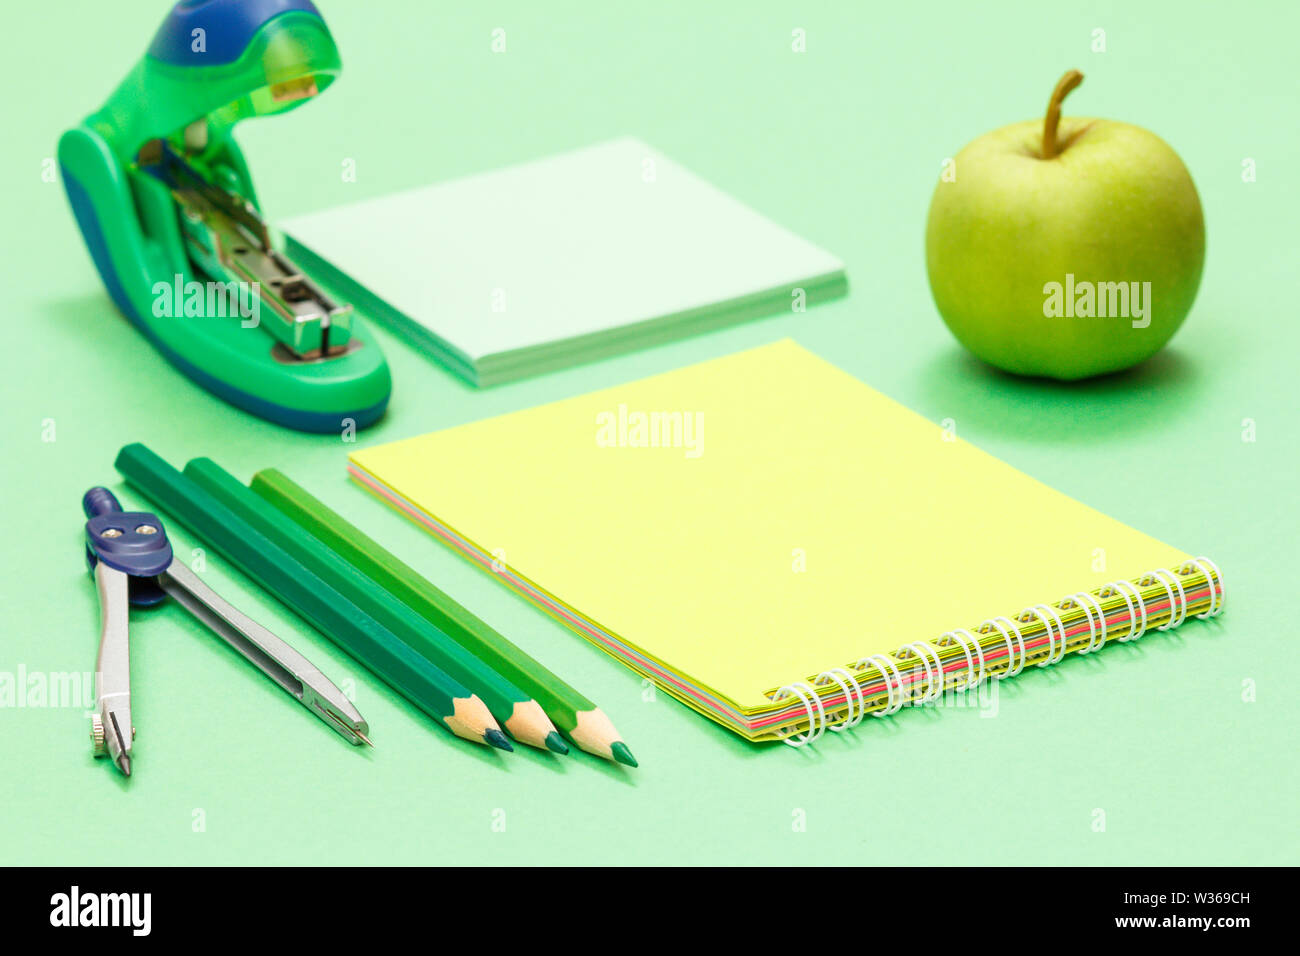 Compass, color pencils, notebook, apple, note paper and stapler on green background. Back to school concept. School supplies. Shallow depth of field. - Stock Image